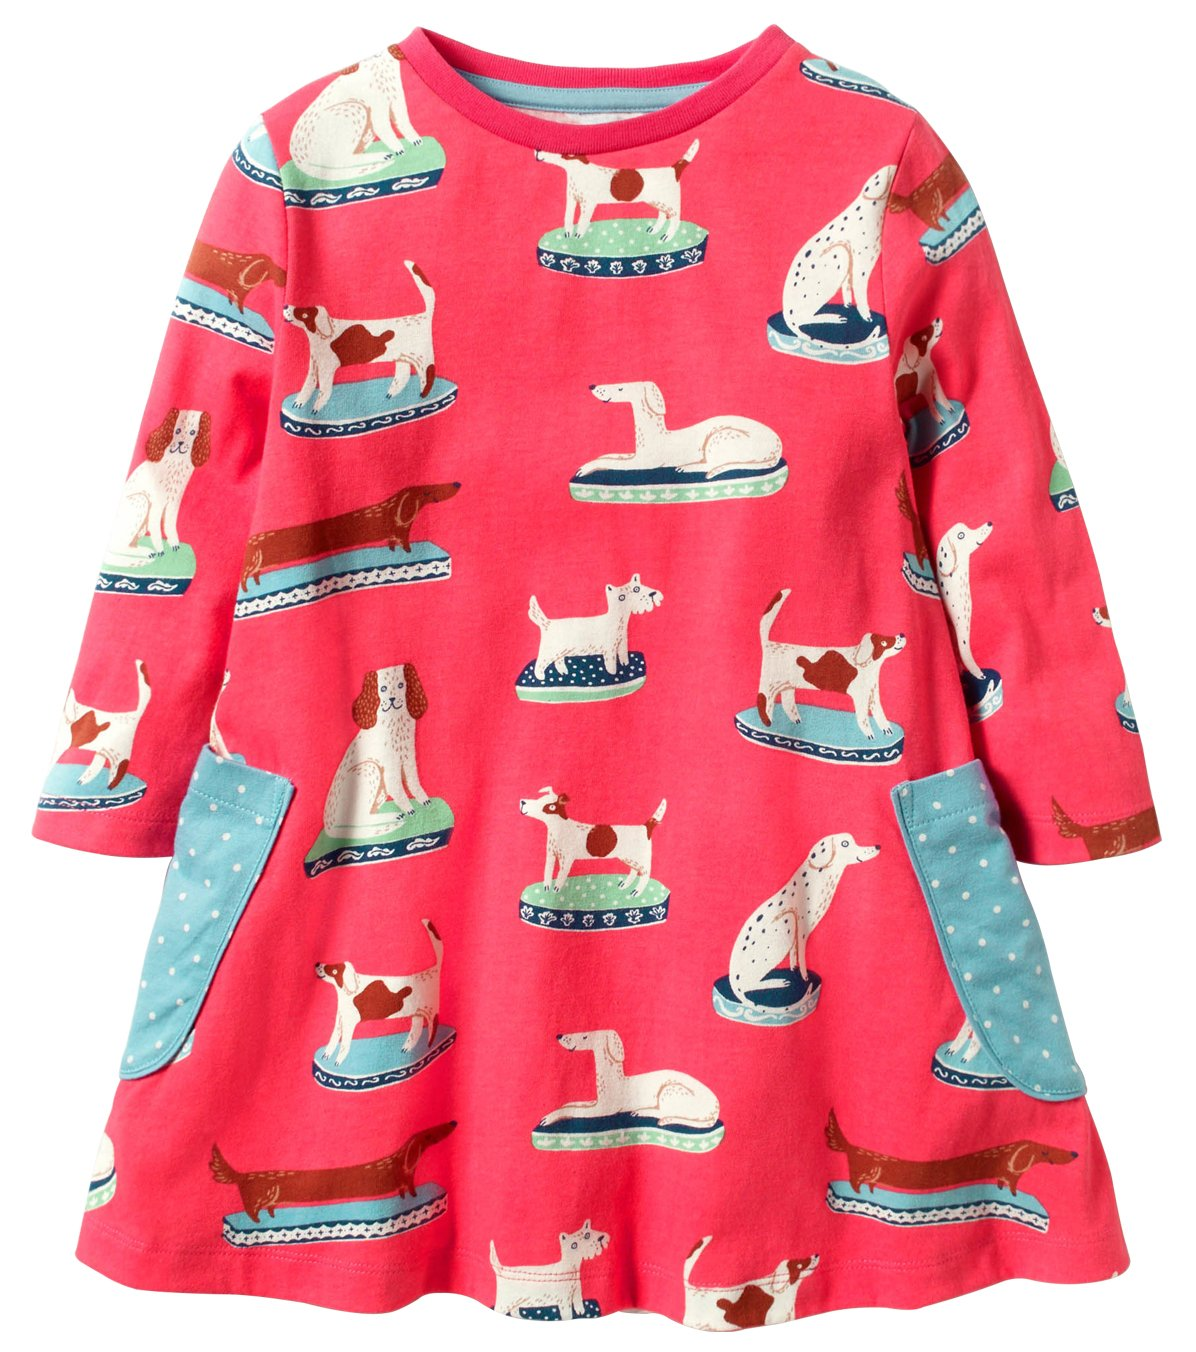 Fiream Girls Cotton Casual Longsleeve Unicorn Cartoon Dresses TZlyqxk115